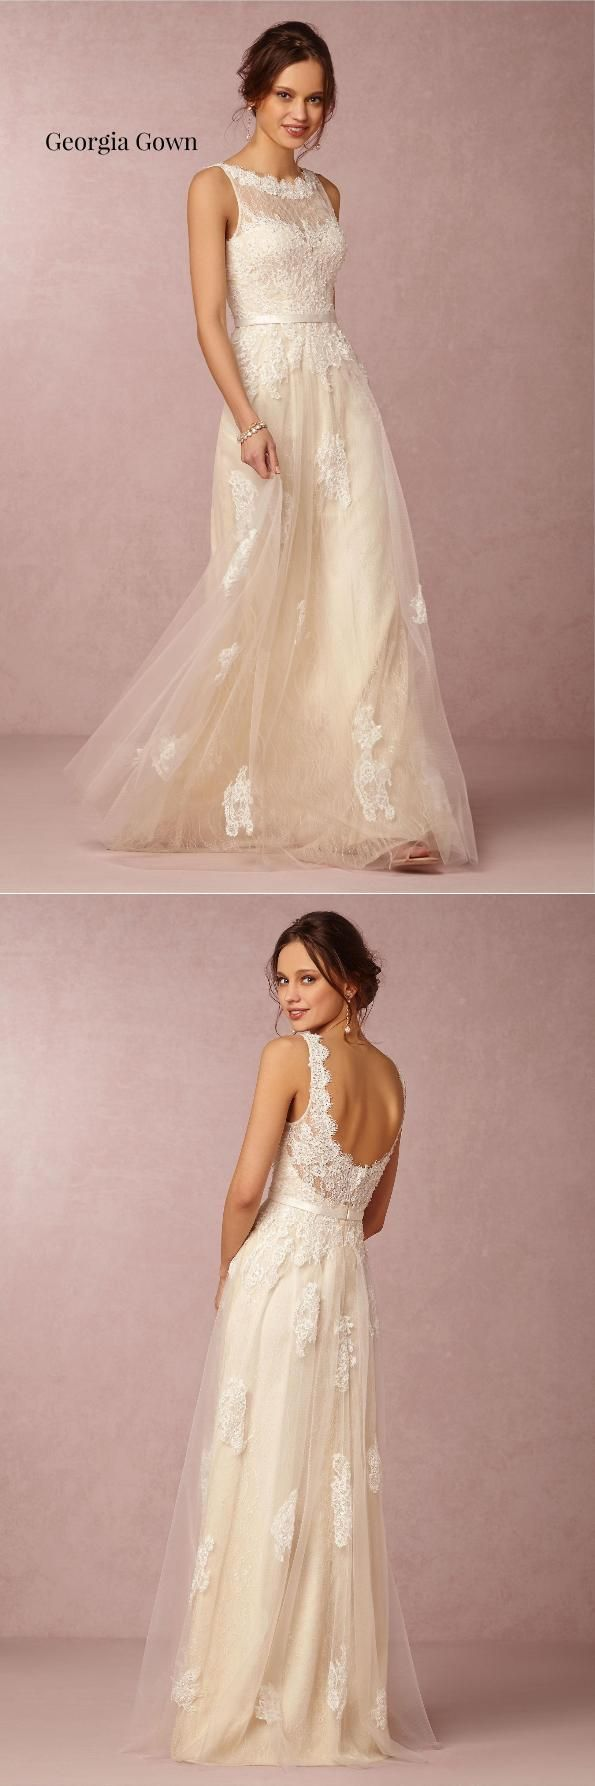 10 Must-See Wedding Dresses Under $1000 | Novios, De novia y Estilo ...